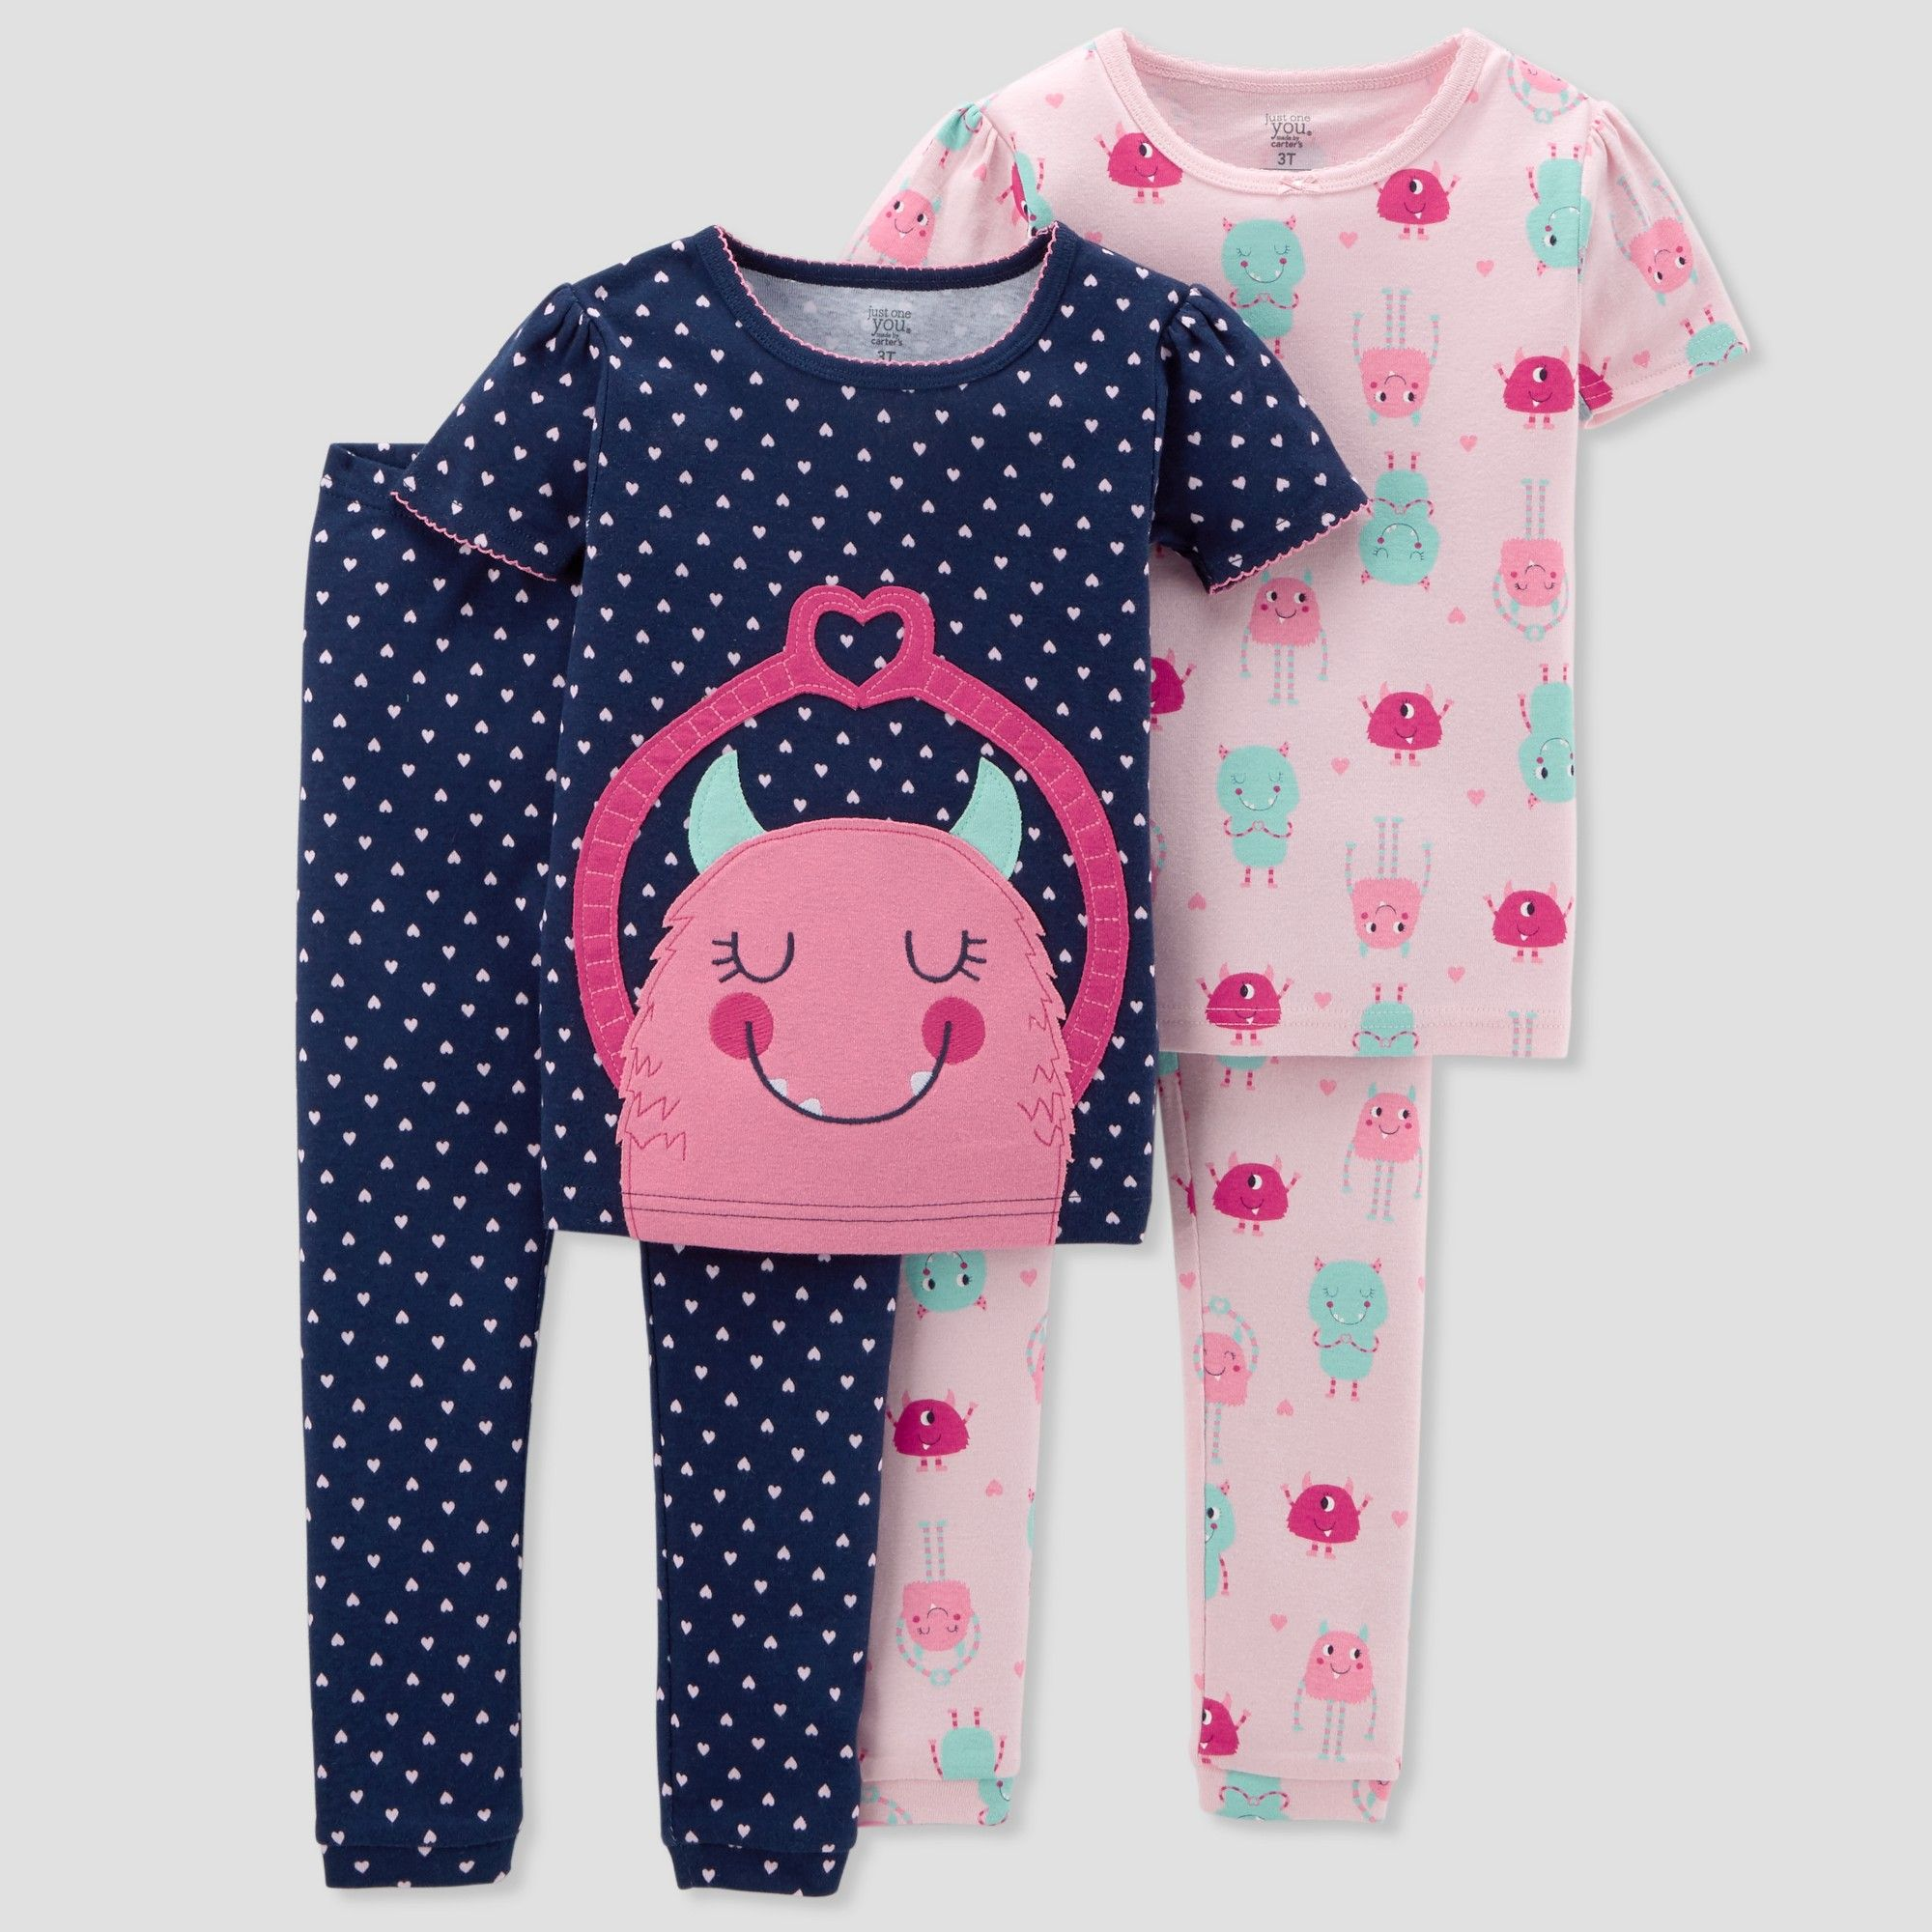 00b8a5ac81de Toddler Girls  4pc Cotton Monster Pajama Set - Just One You made by ...